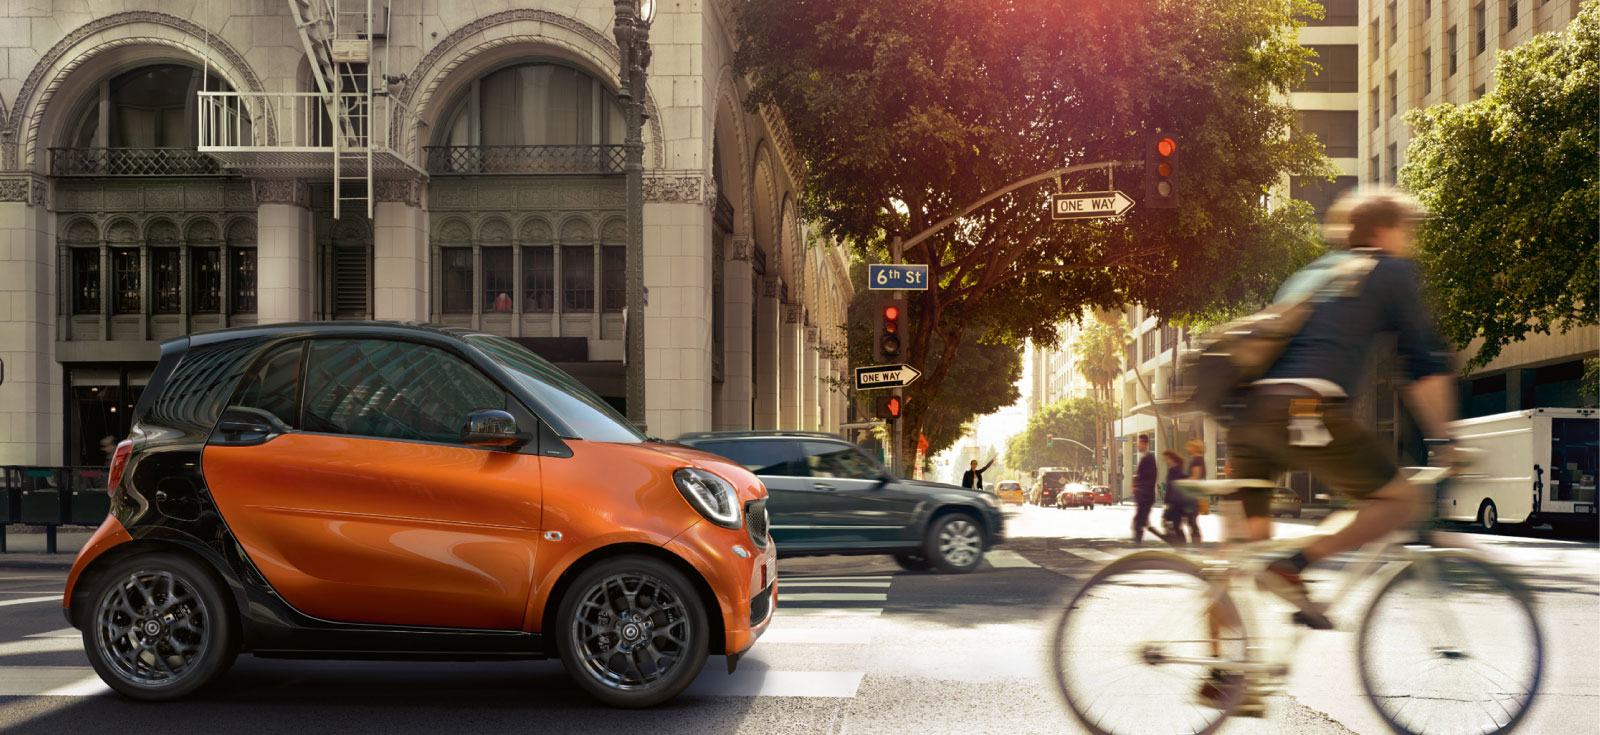 Smart Car Seattle: New Smart Fortwo Coupe Cars For